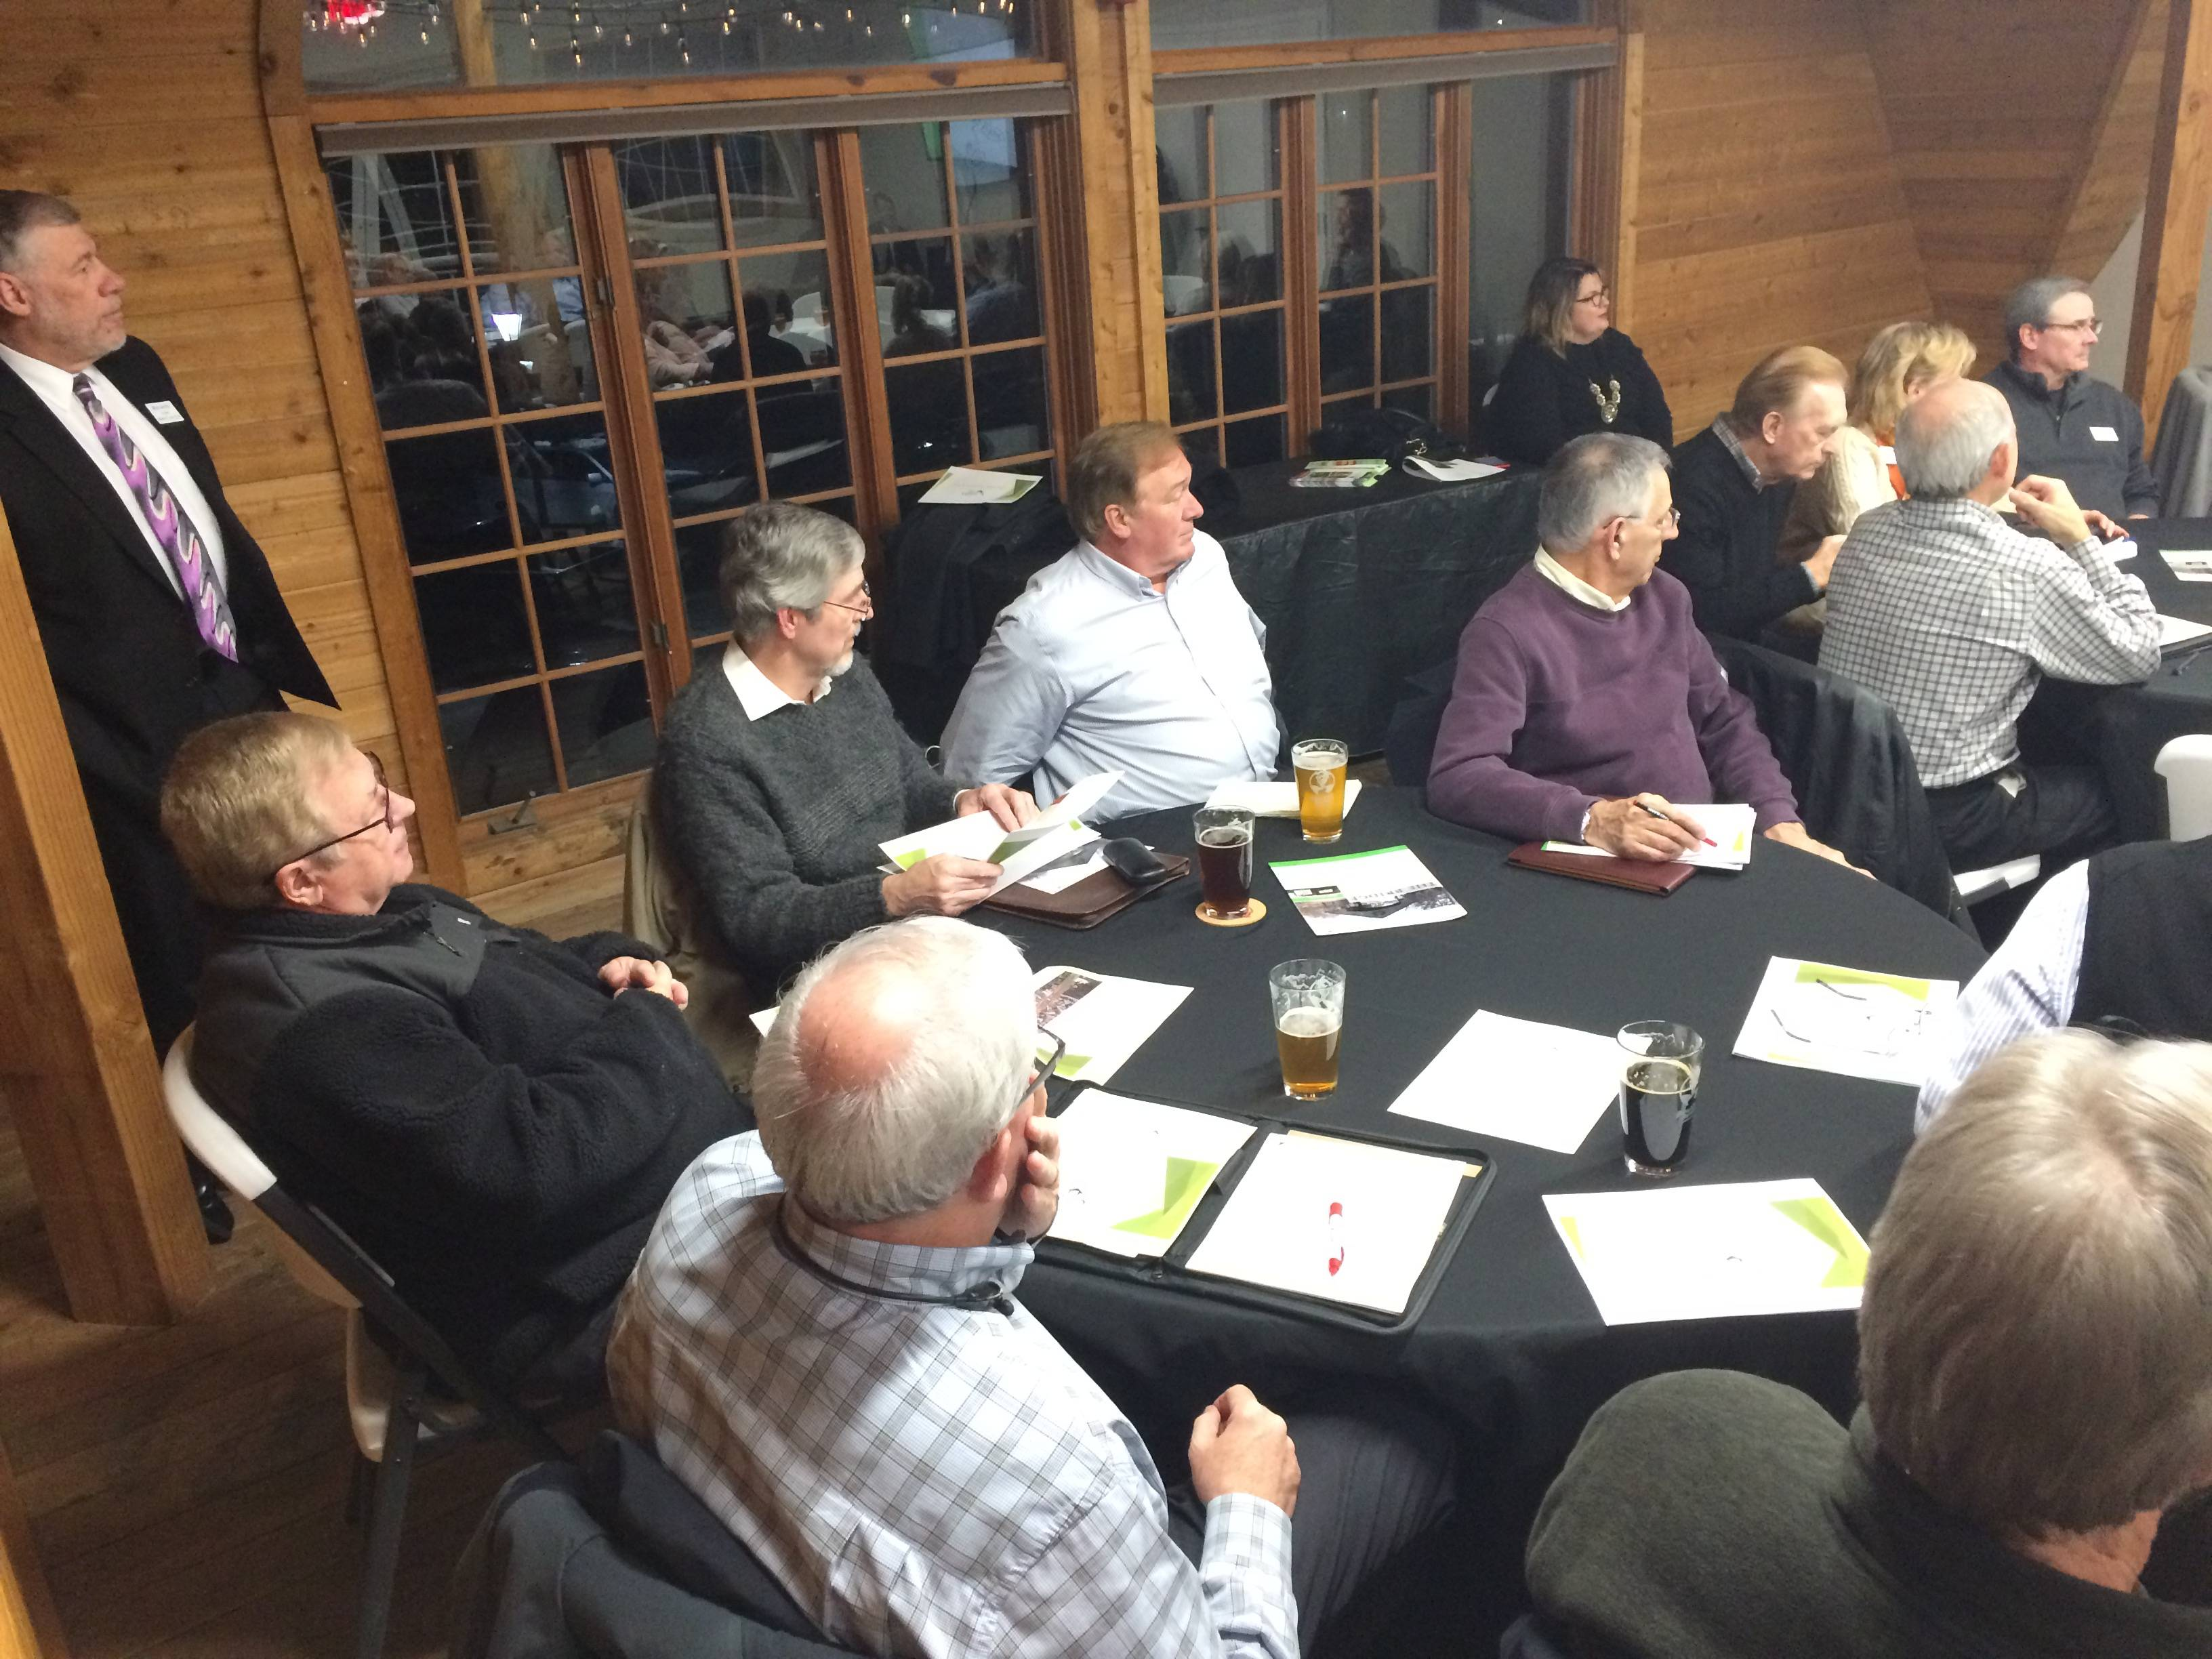 Some attending the special Long Grove village board meeting at Buffalo Creek Brewing enjoyed craft beer during the session.